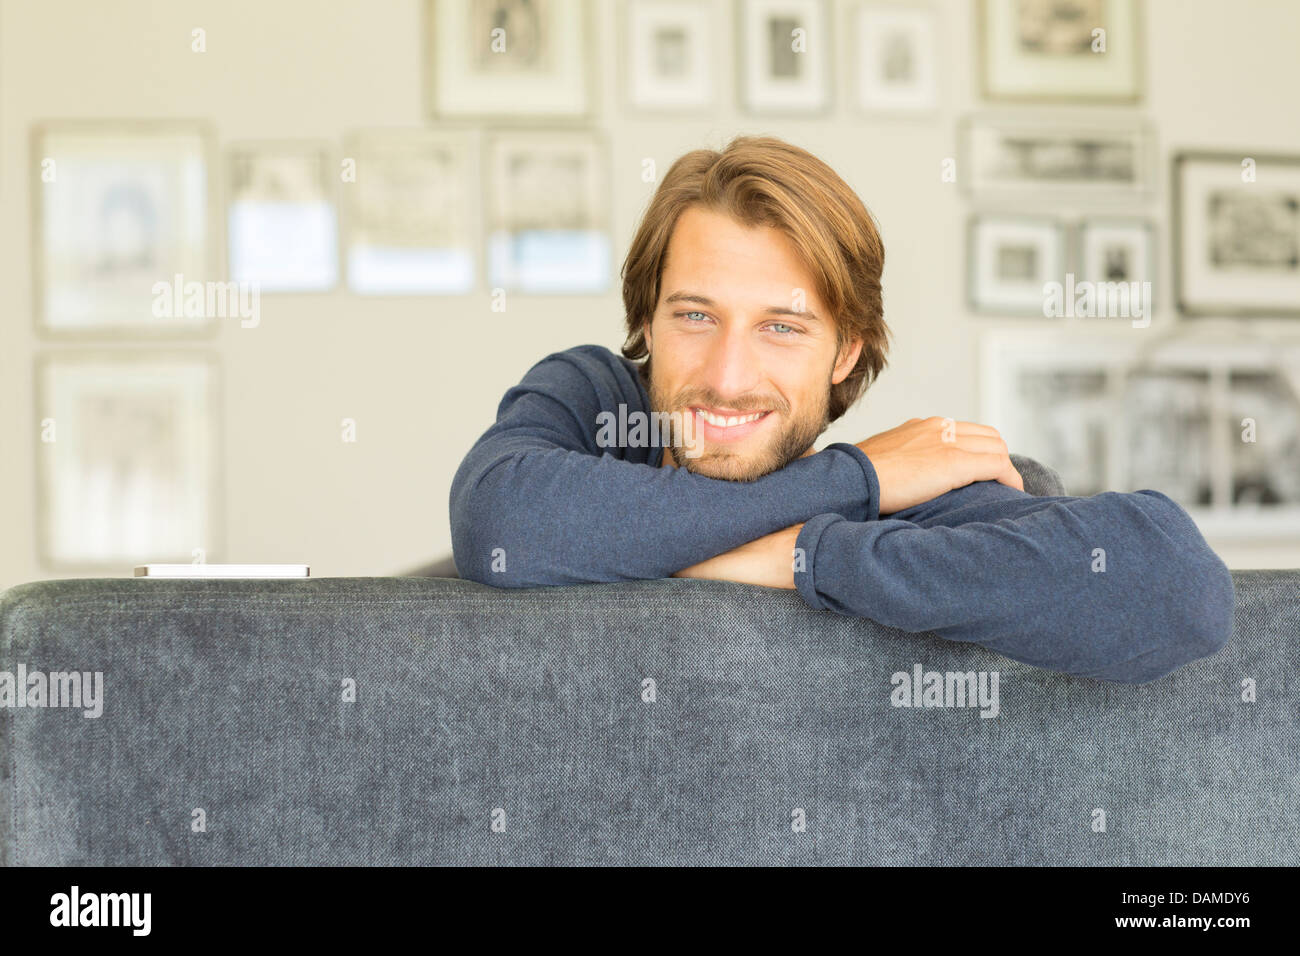 Smiling man sitting on sofa Banque D'Images